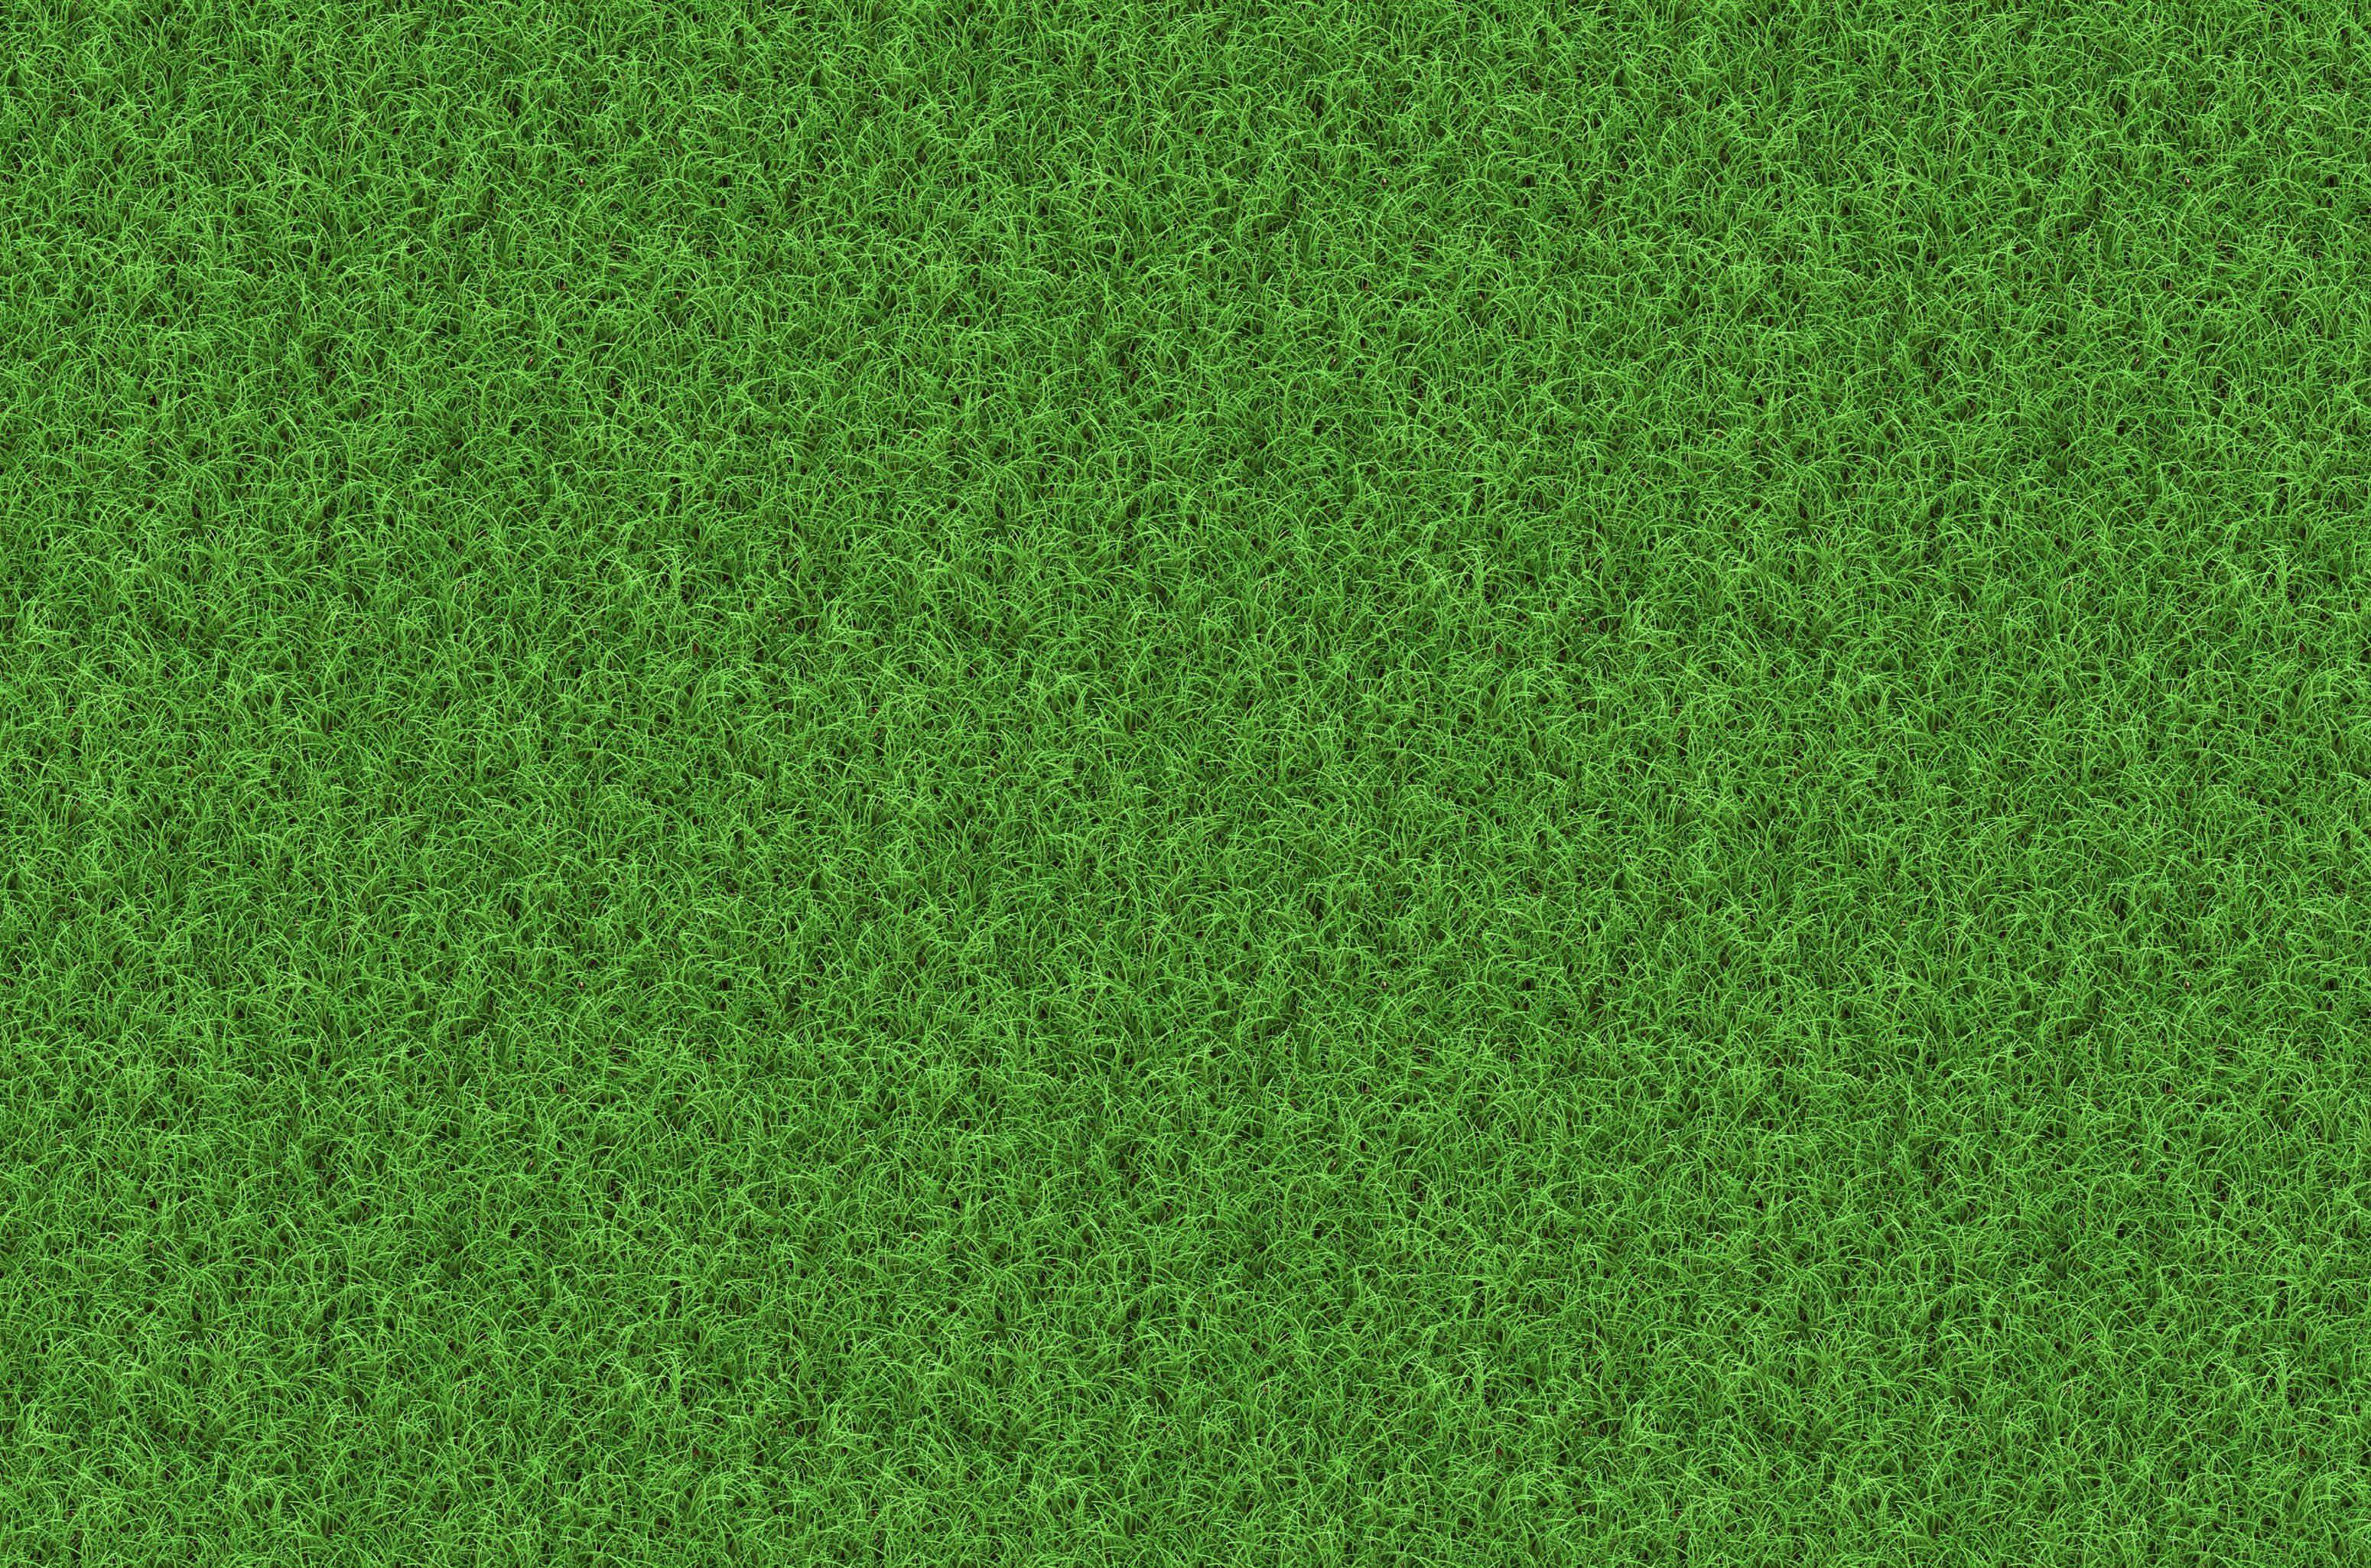 Gallery For > Grass Texture Wallpapers